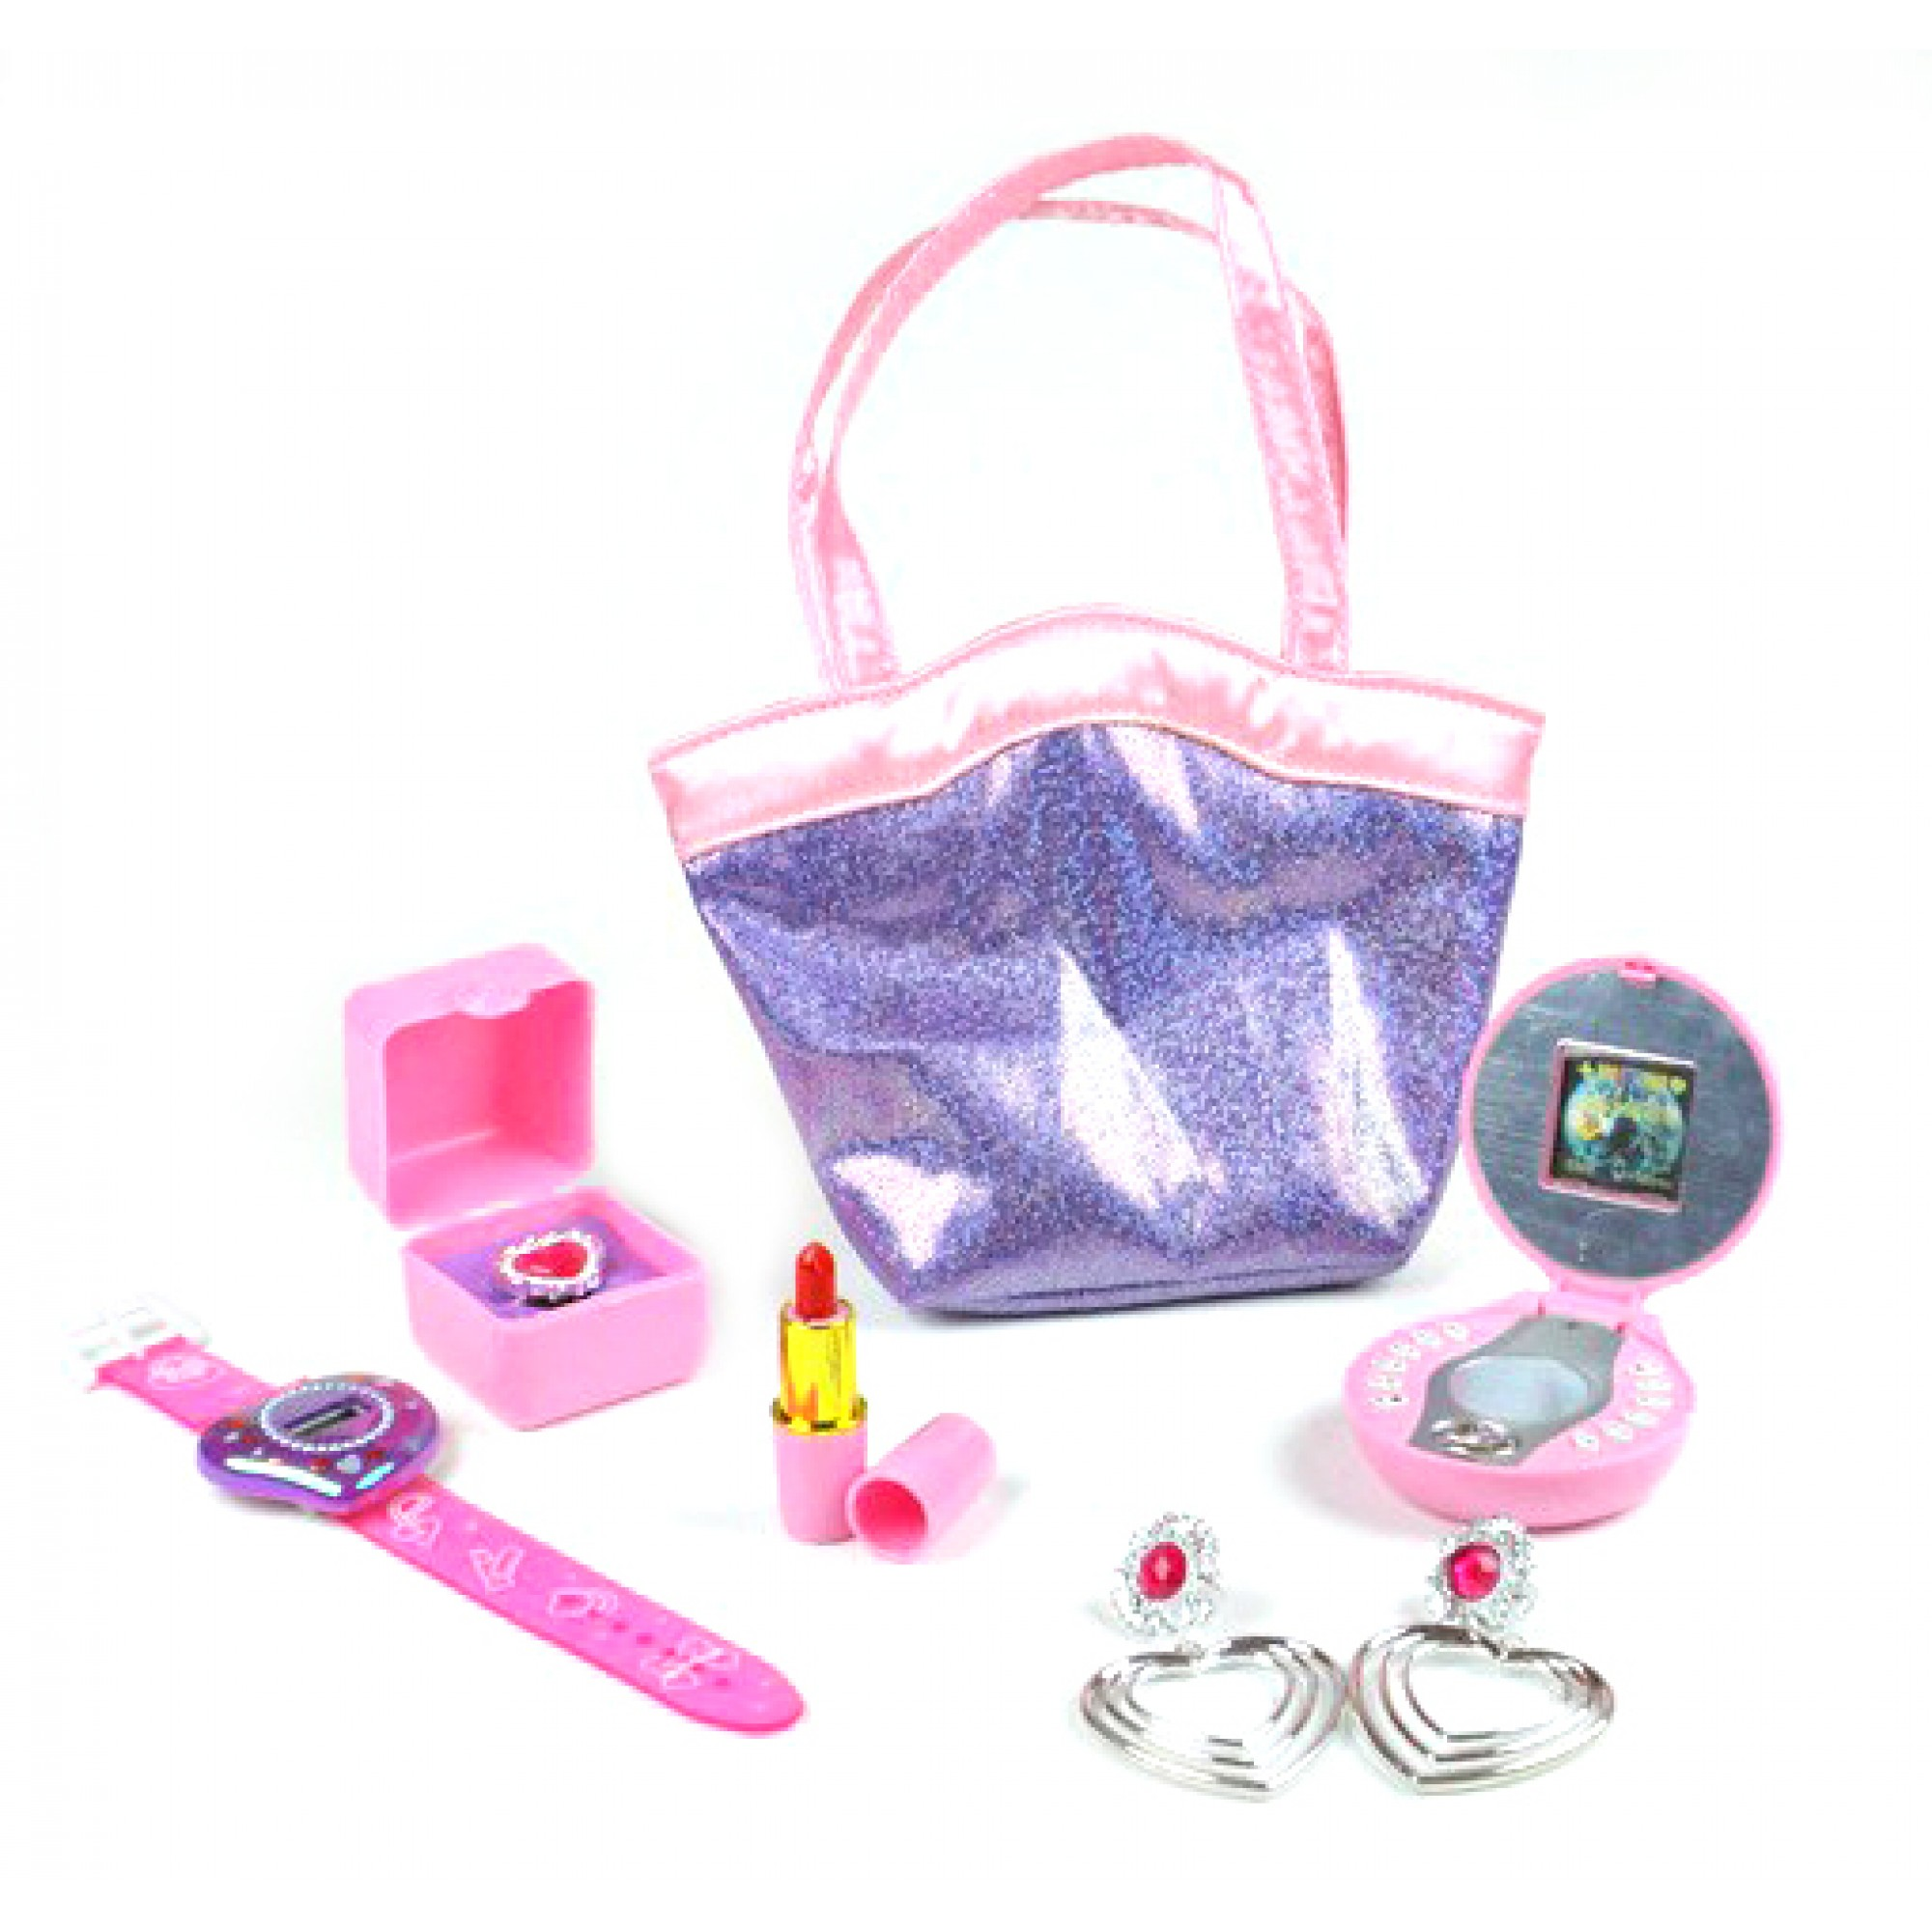 Cosmetic Phone & Watch Set